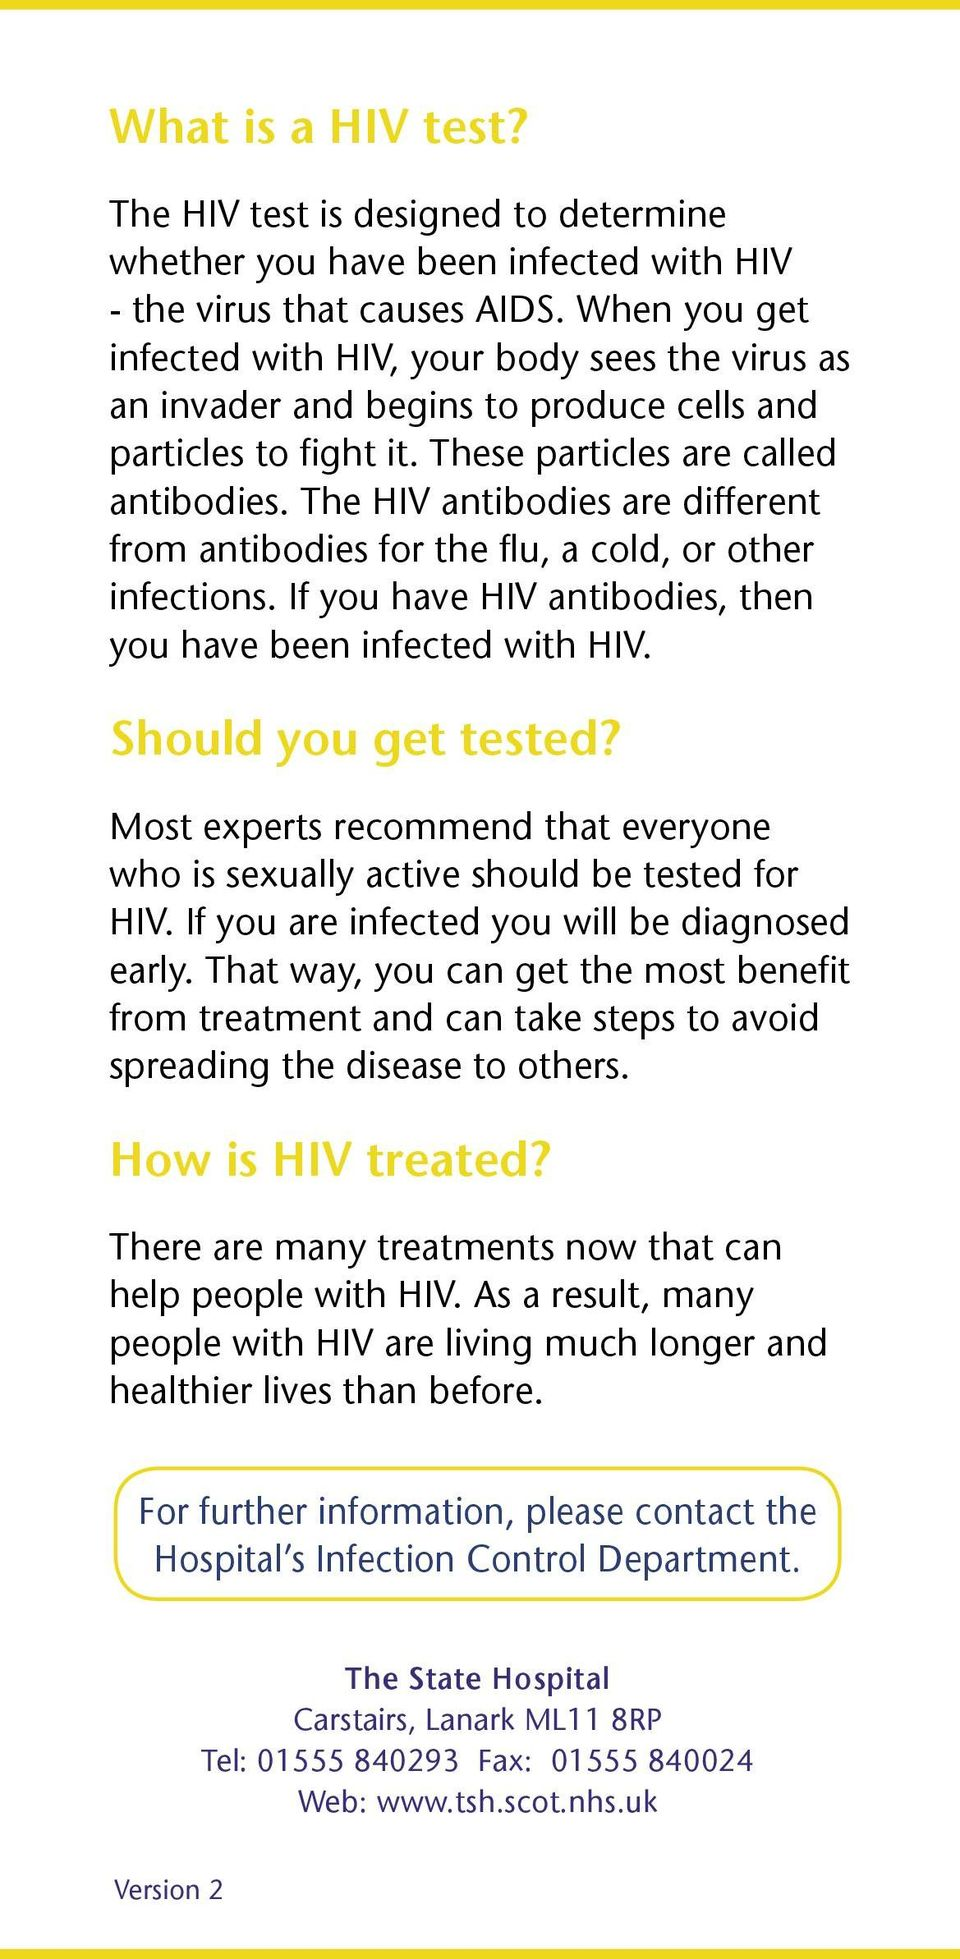 The HIV antibodies are different from antibodies for the flu, a cold, or other infections. If you have HIV antibodies, then you have been infected with HIV. Should you get tested?